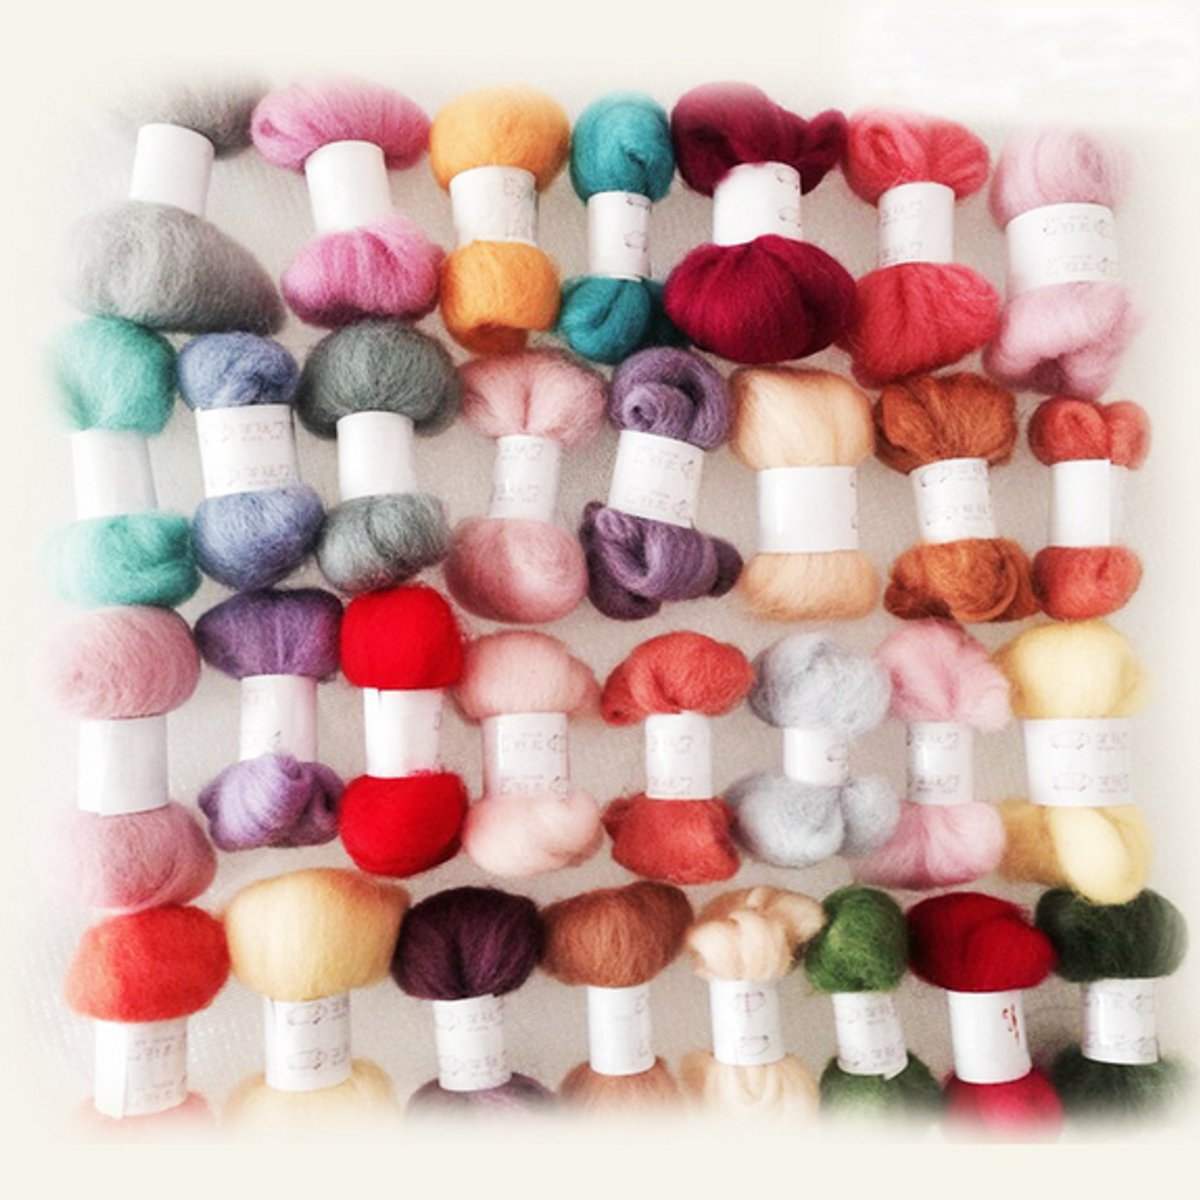 Practical 50 Colors Wool Fibre Roving Needle Felting Hand Spinning DIY Dolls Knitting Crafts Supply Accessories